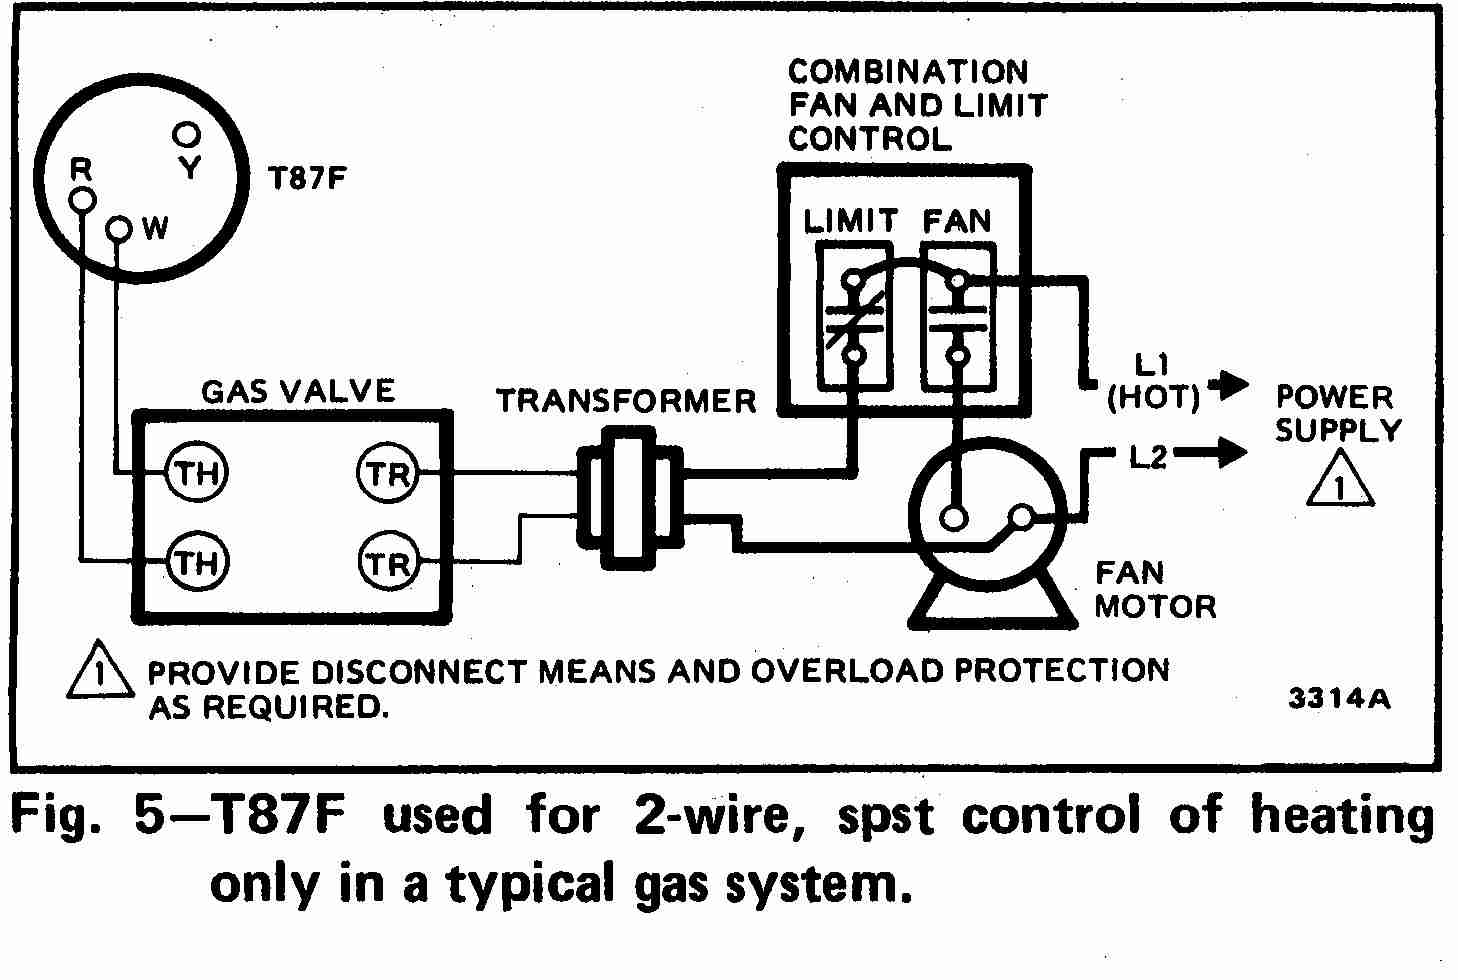 Room Thermostat Wiring Diagrams For Hvac Systems Motor Control Circuit Diagram Together With Load Cell Honeywell T87f 2 Wire Spst Of Heating Only In